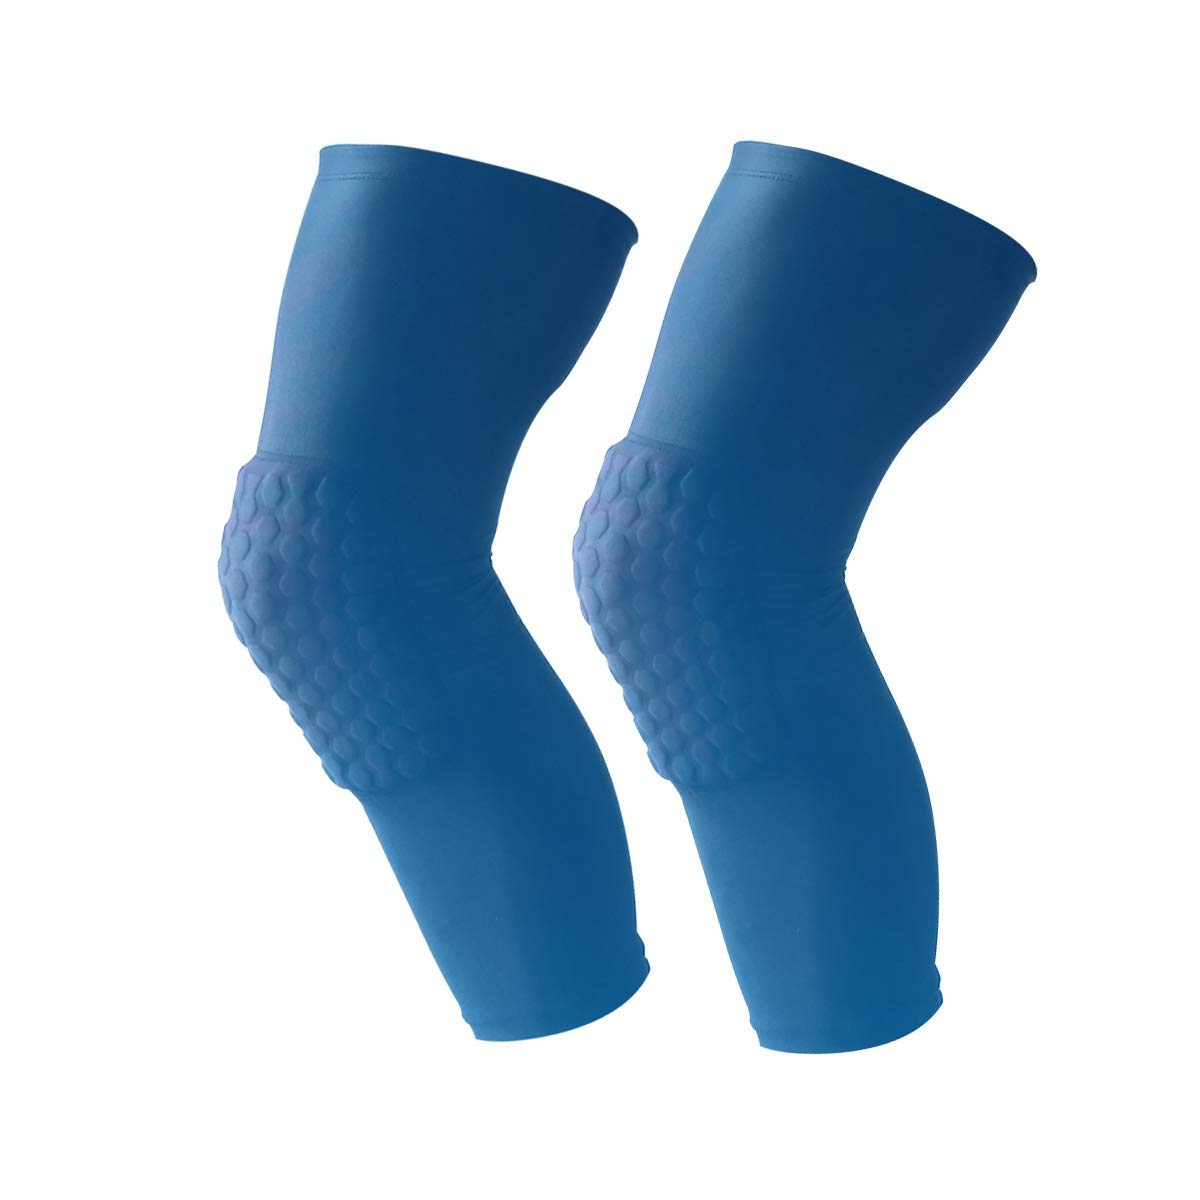 80151be622 Get Quotations · SunlightKnee Brace Compression Sleeve Knee Support Braces  with Cushion for Running, Workout, Sports,